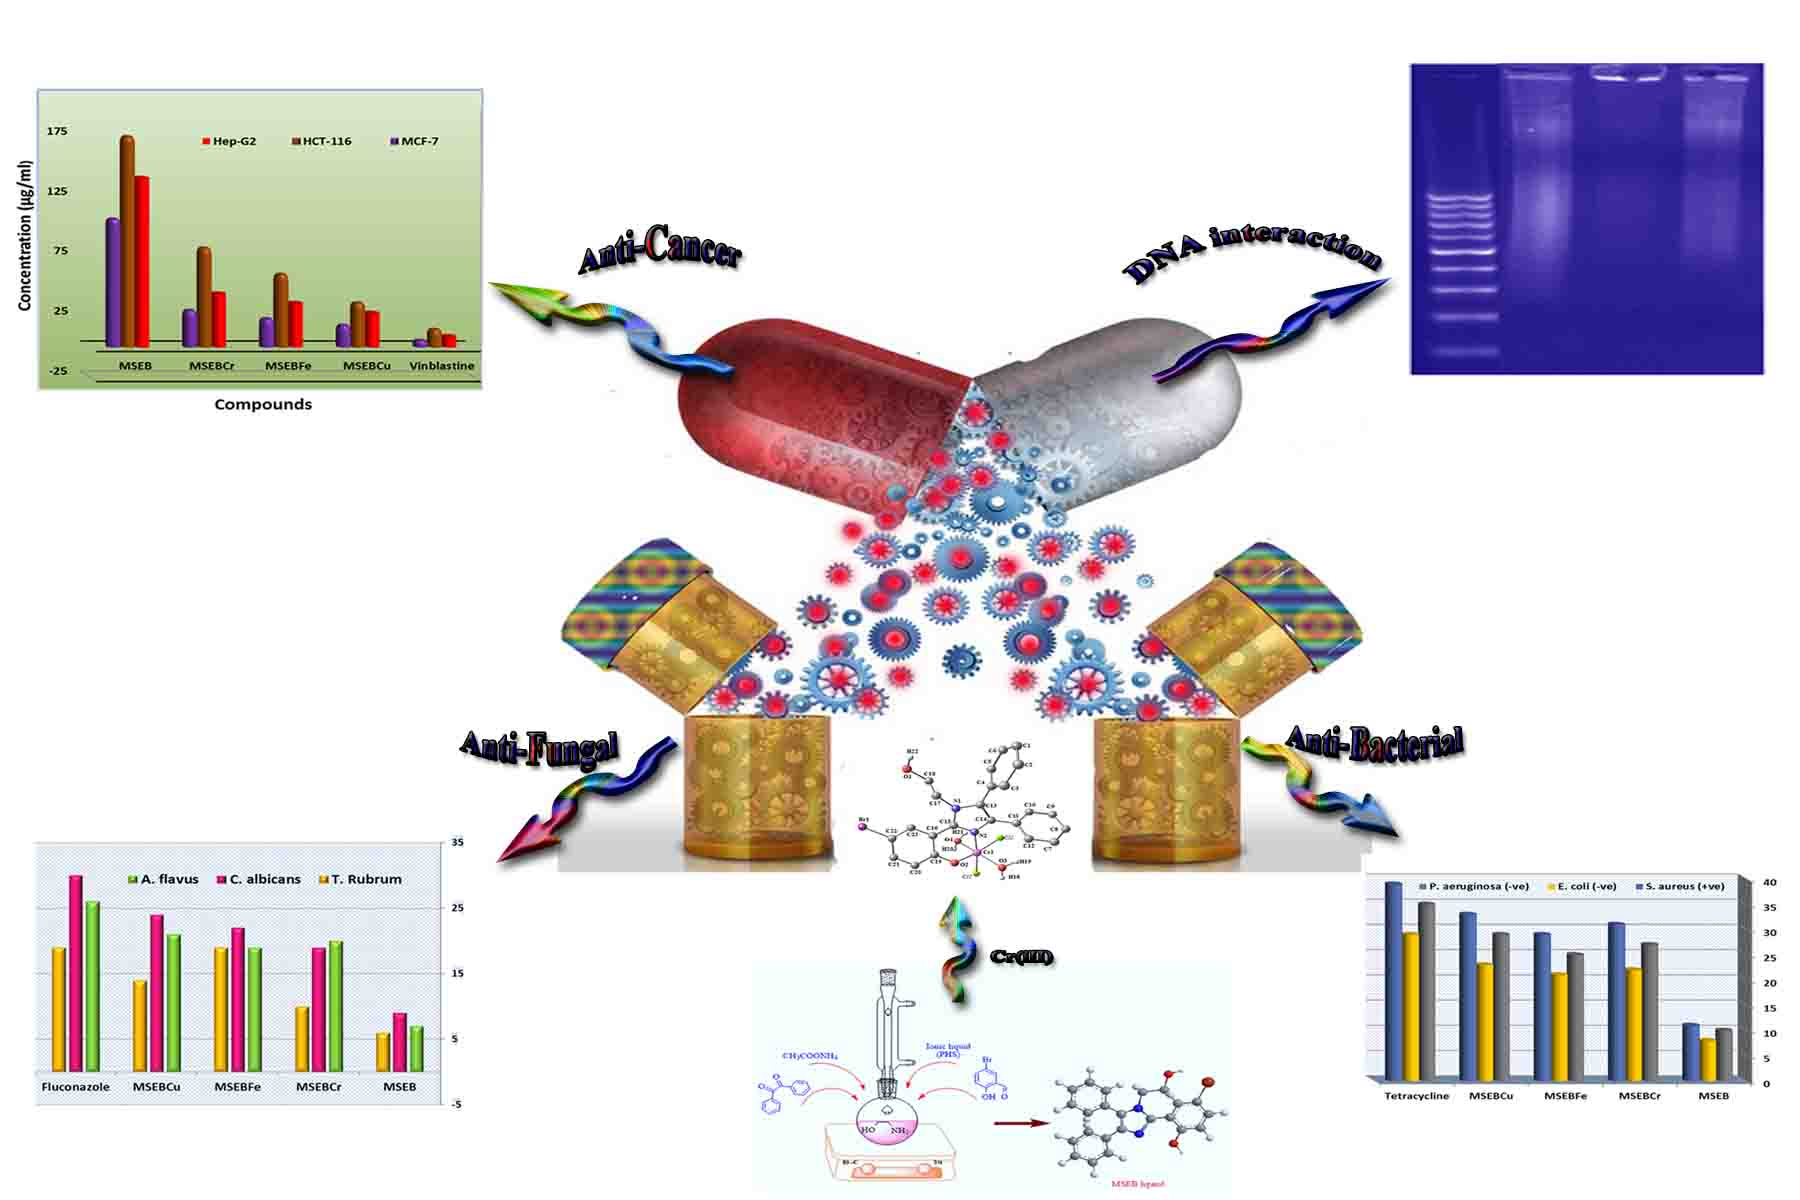 Synthesis and Characterization of New Cr(III), Fe(III) and Cu(II) Complexes Incorporating Multi-Substituted Aryl Imidazole Ligand: Structural, DFT, DNA Binding, and Biological Implications